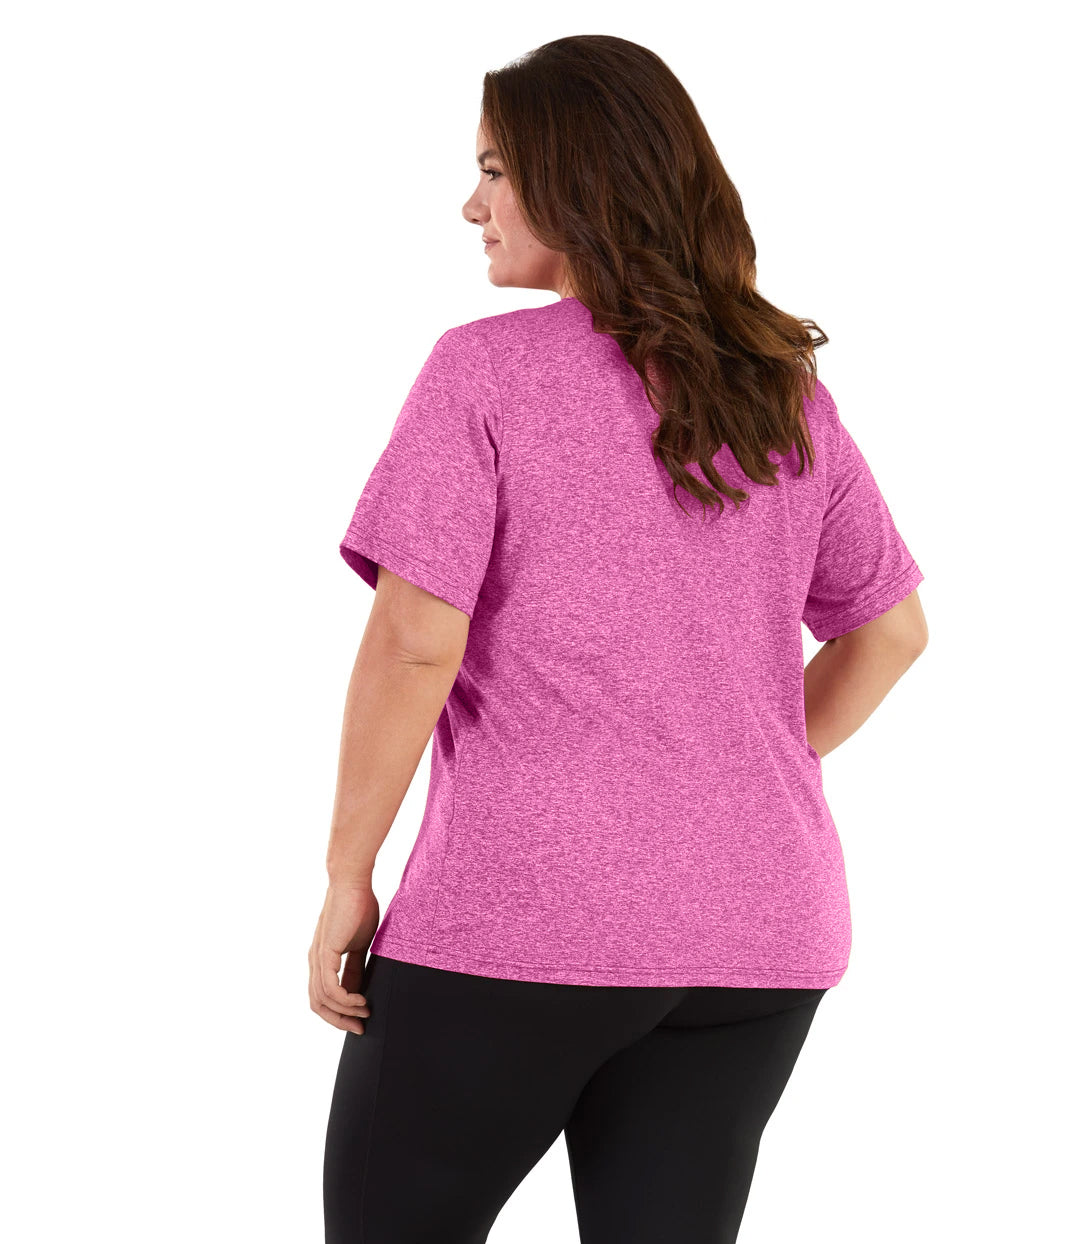 SoftWik Basic V-Neck Tee-Tops Short Sleeve-Osheka, Inc-XL-Heather fuschia-JunoActive